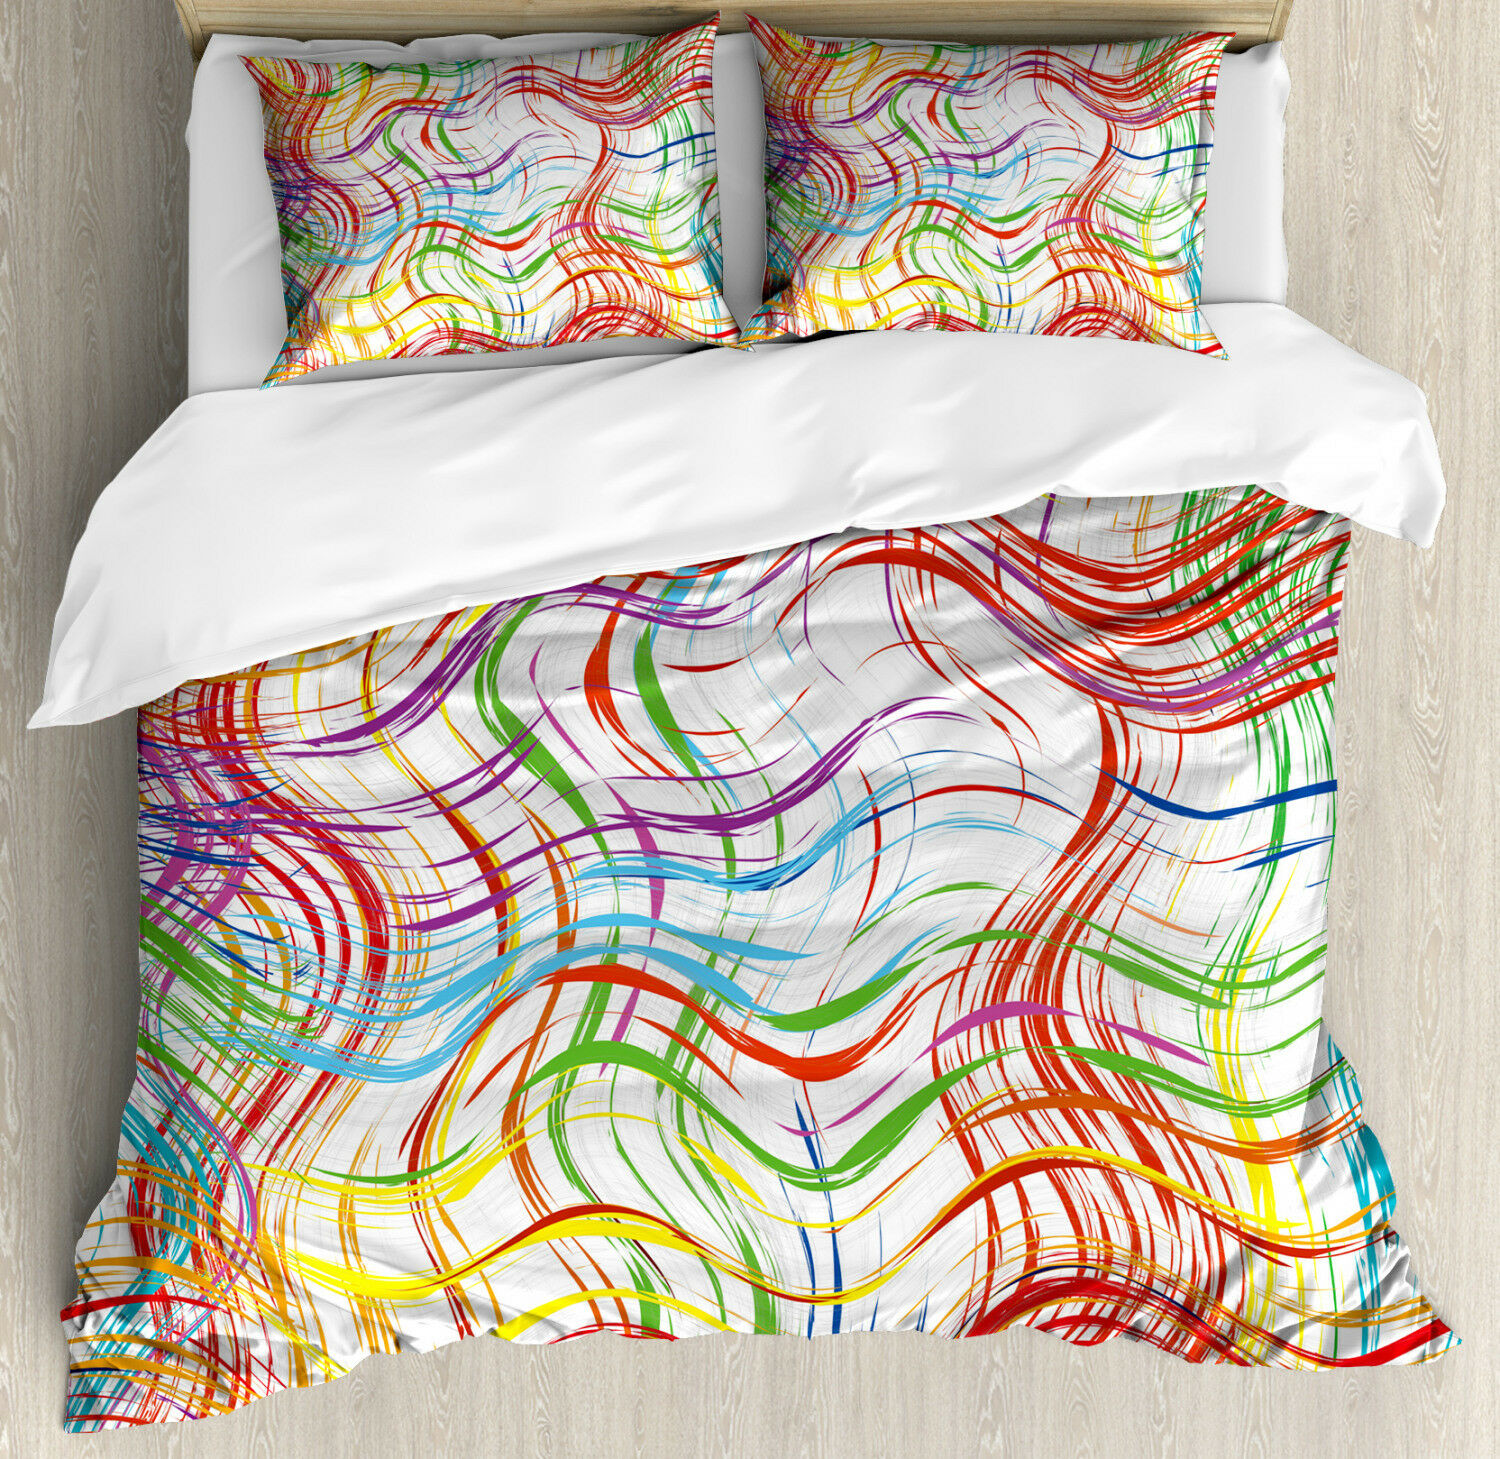 Grunge Duvet Cover Set with Pillow Shams Wavy colorful Stripes Print